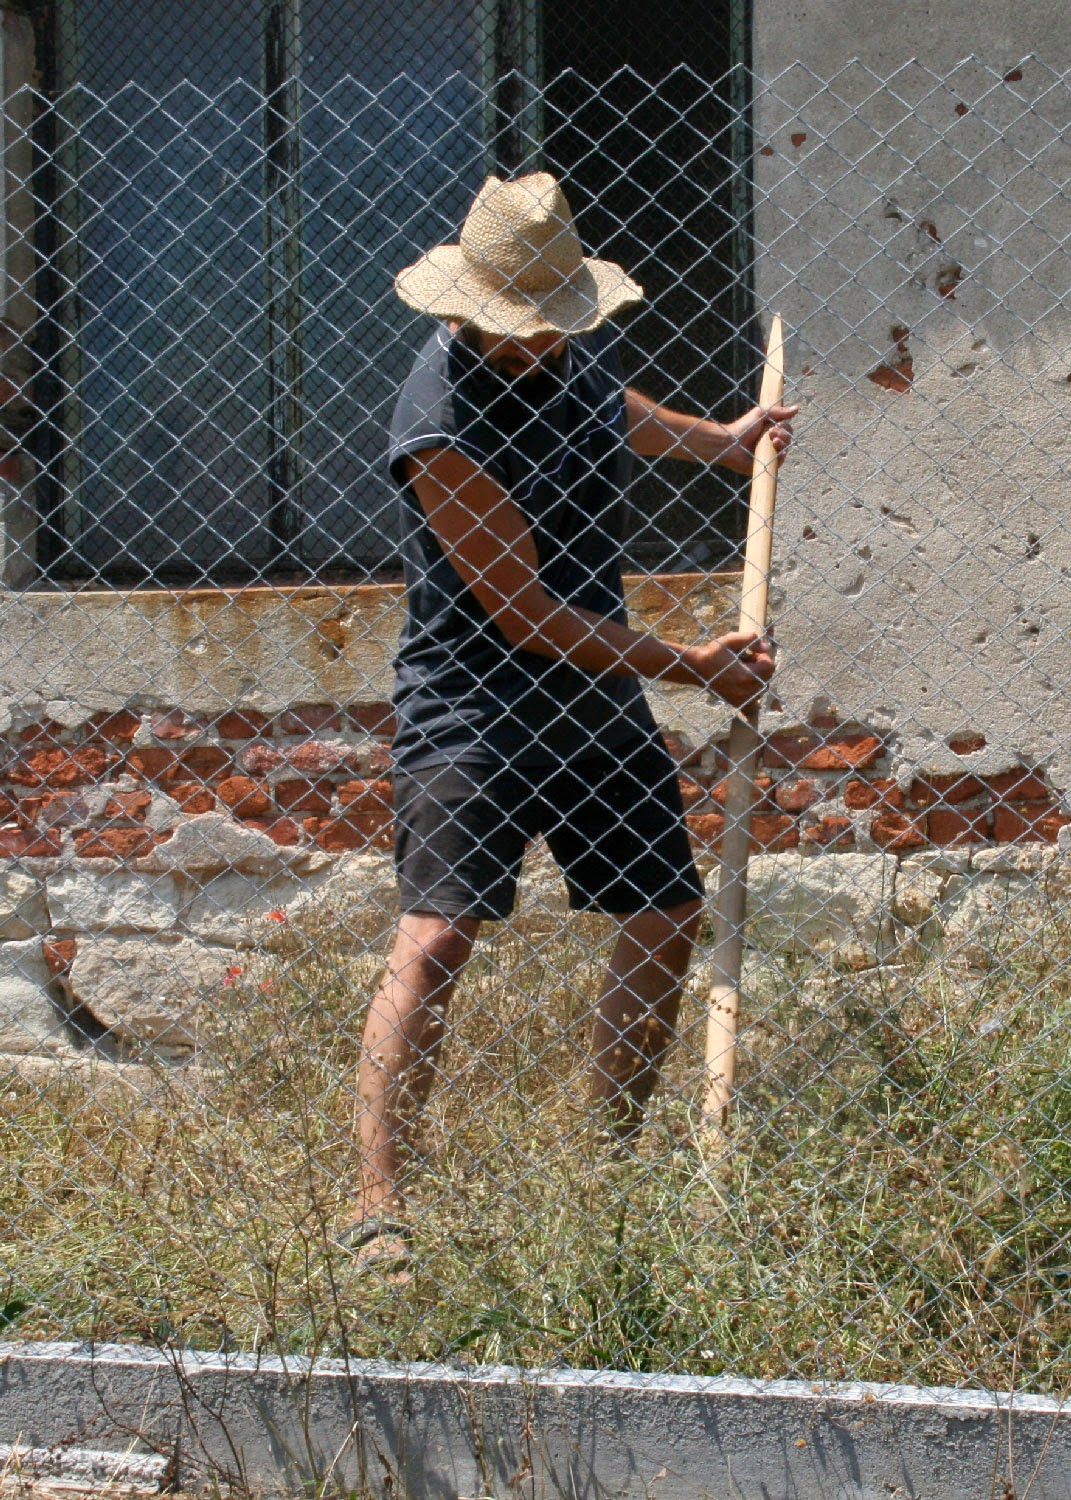 Scything in the enclosure